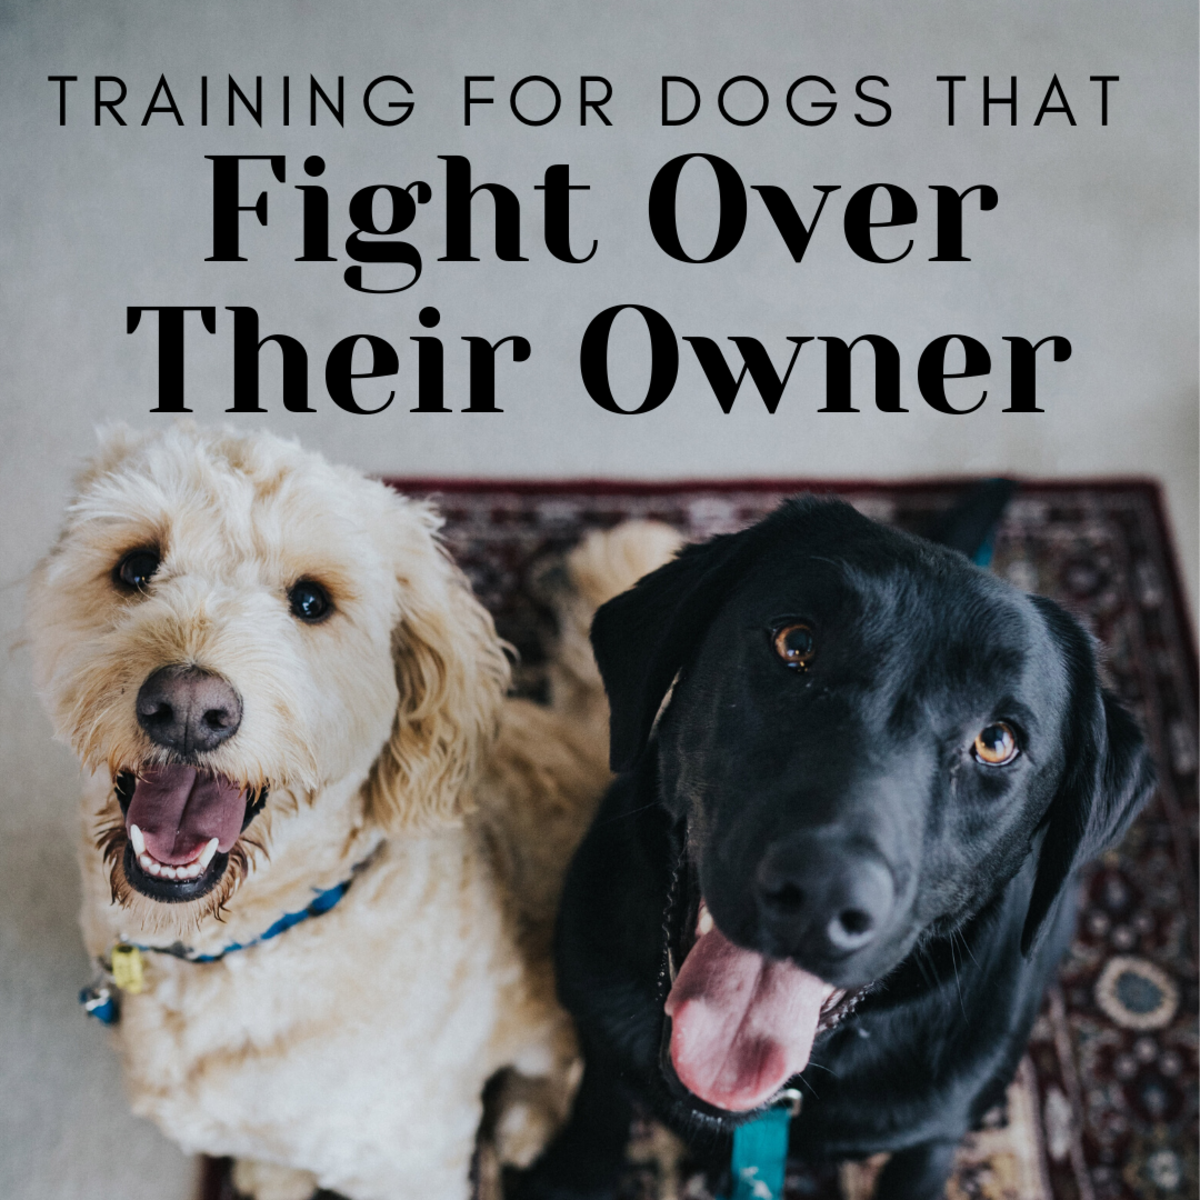 How to Stop Dogs From Fighting Over an Owner for Attention